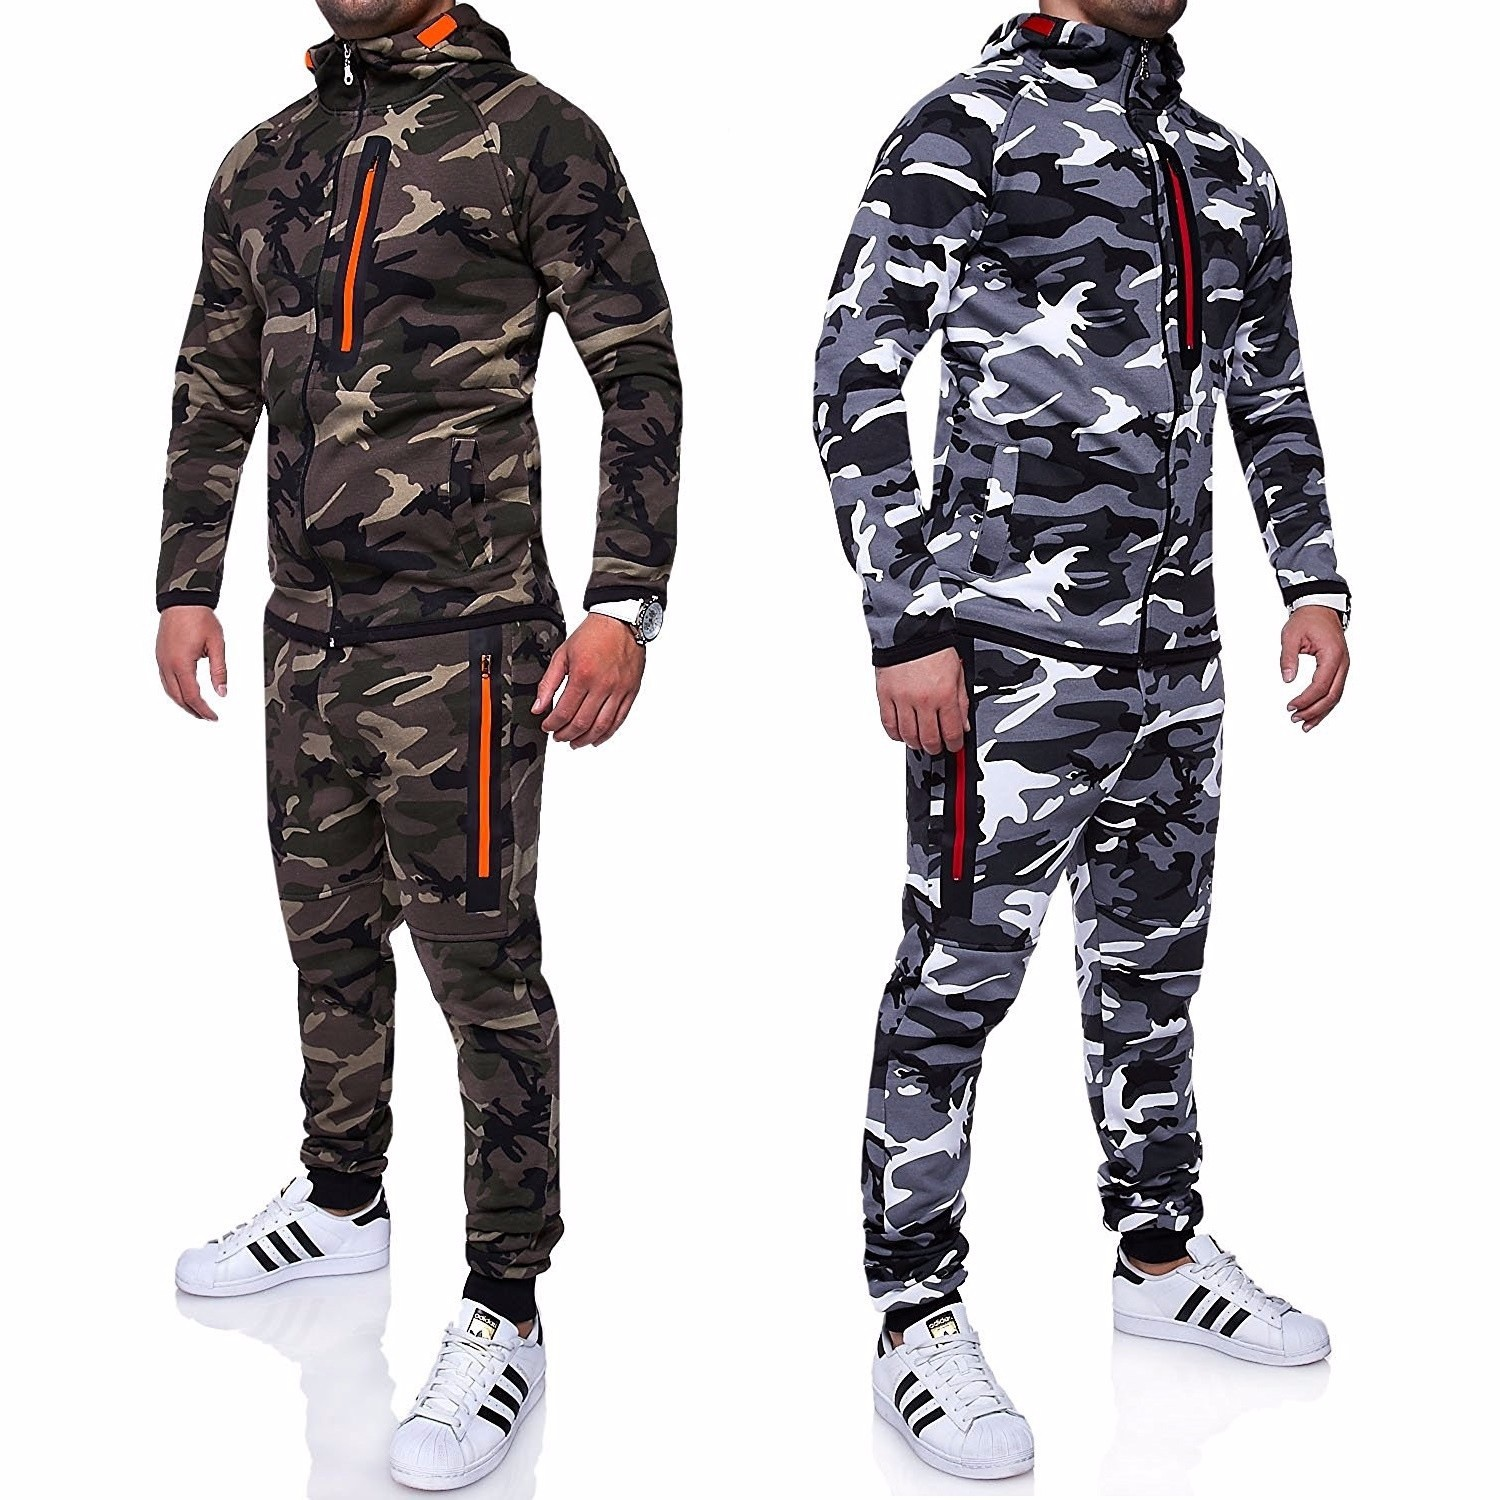 Ouma 2018 Hot Selling Casual Men'S Wear Hoodie Camouflage Sports Set Two-Piece Set Coat